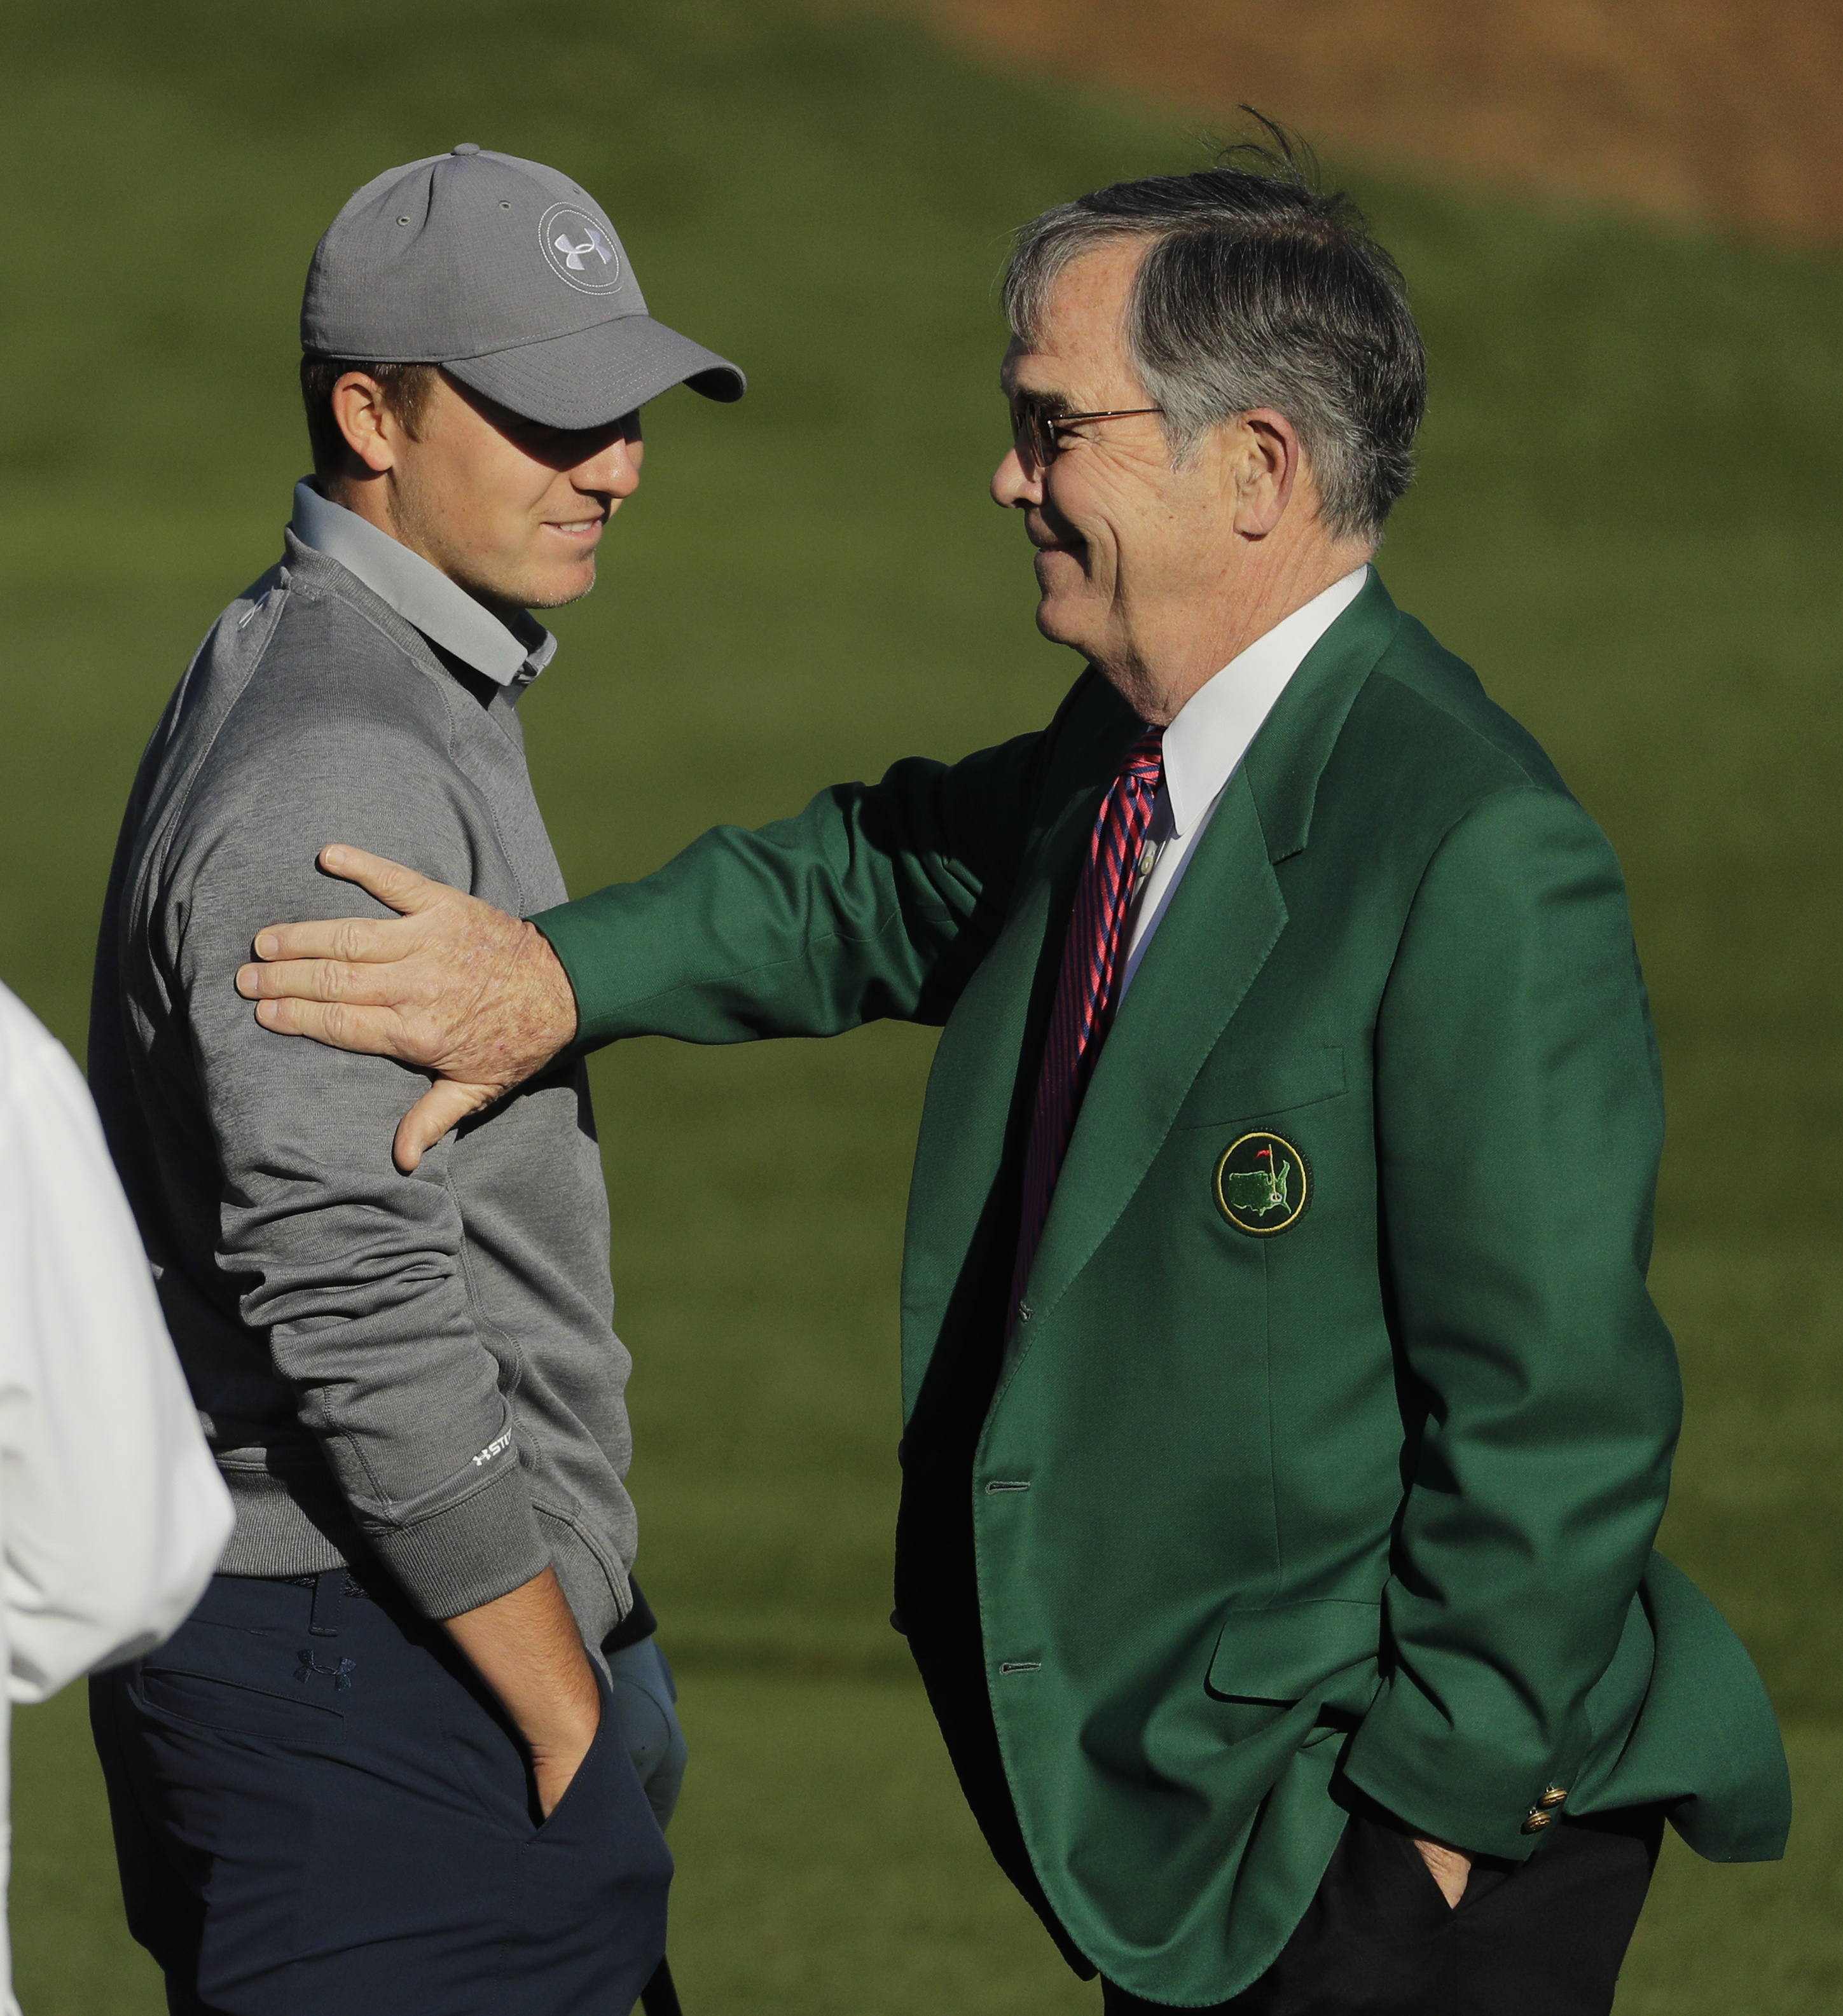 Billy Payne, right, Chairman of Augusta National Golf Club, speaks with Jordan Spieth on the driving range during a practice round for the Masters golf tournament, Tuesday, April 5, 2016, in Augusta, Ga. (AP Photo/Chris Carlson)